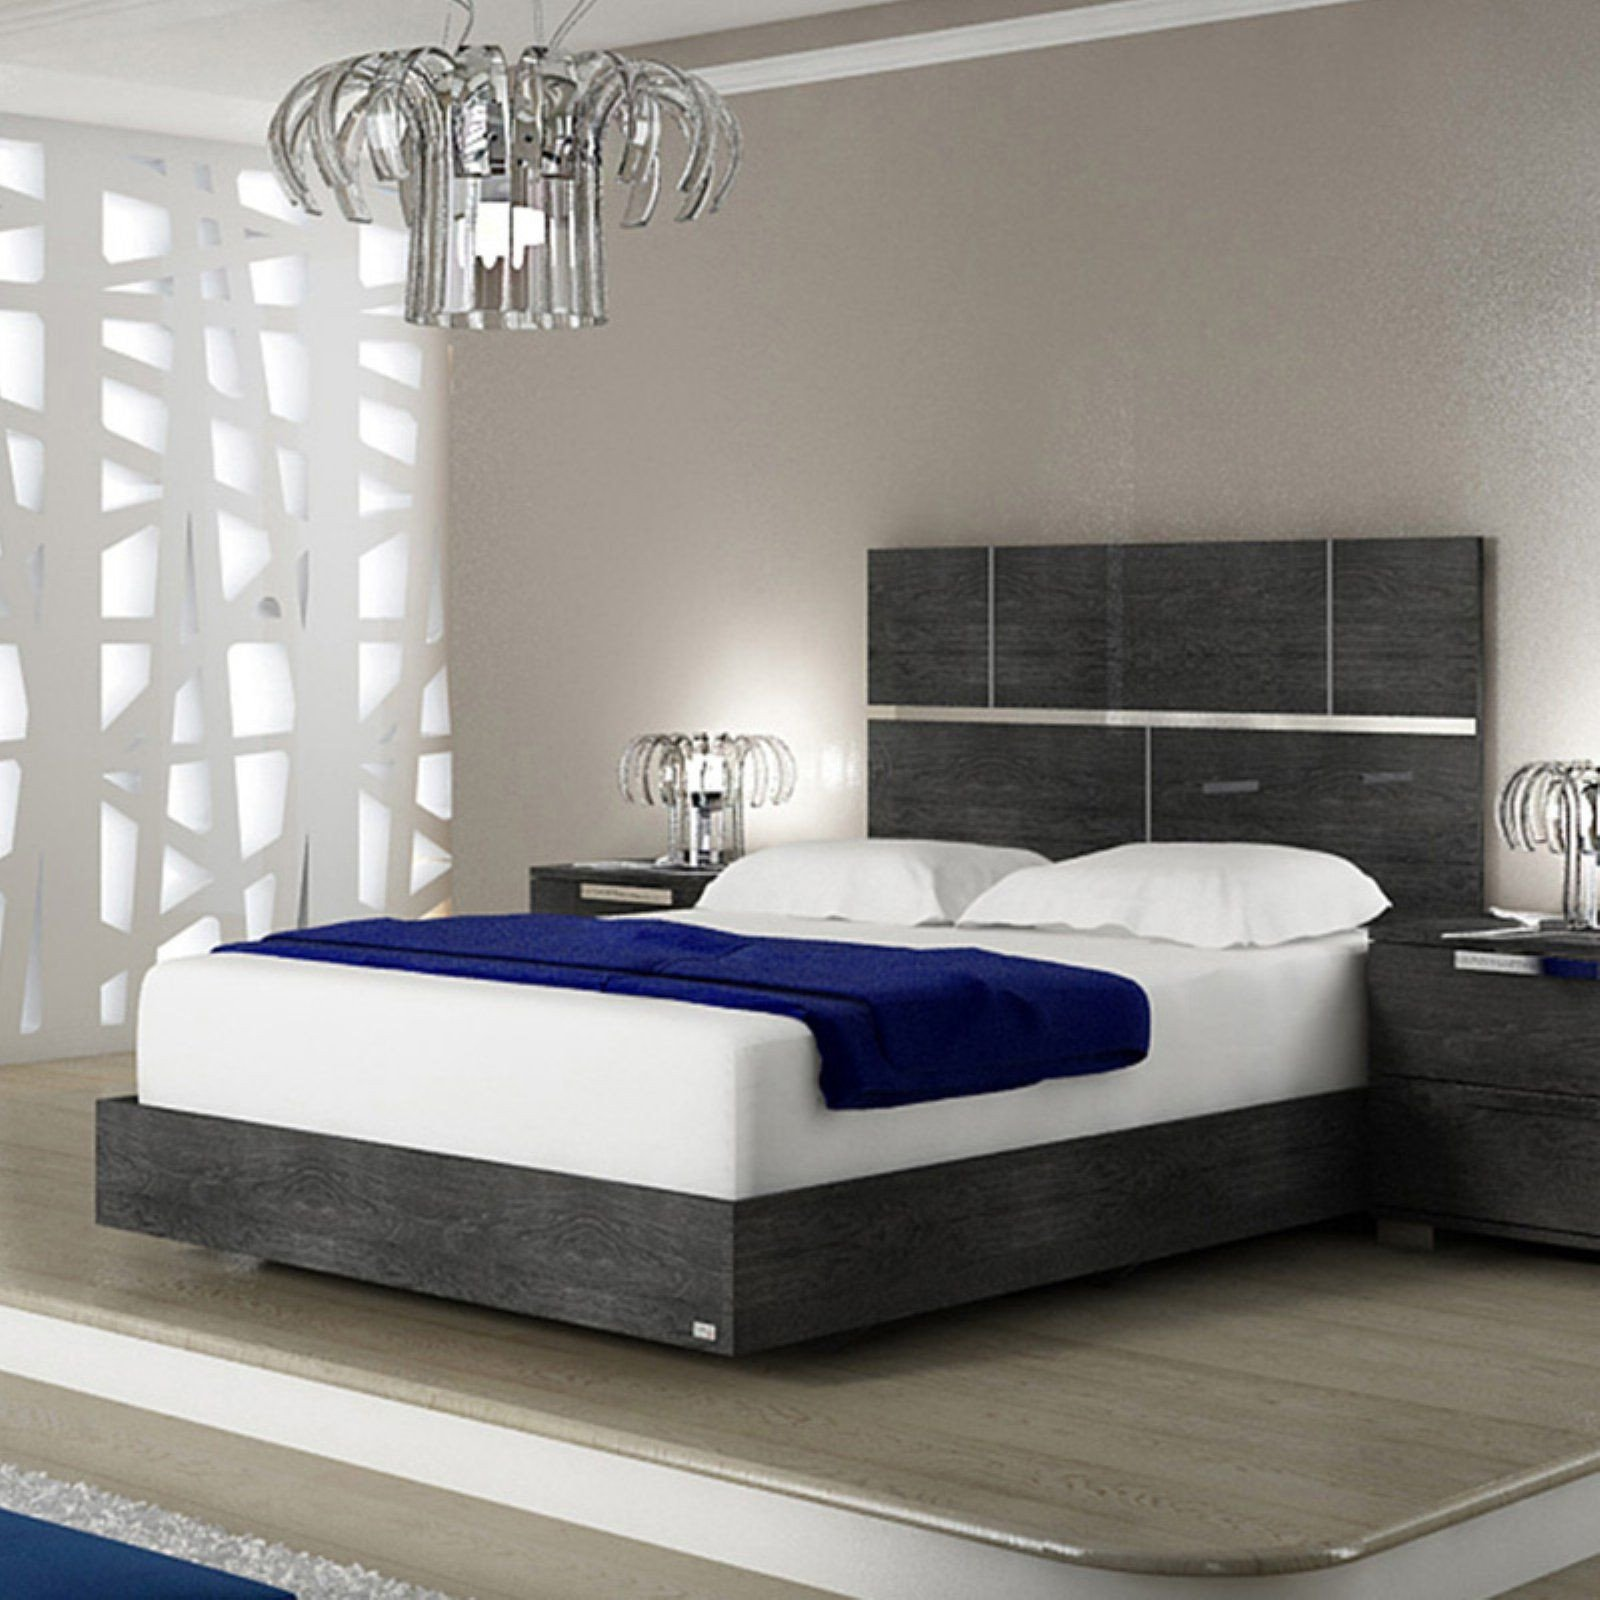 White Lacquer Bedroom Set Unique Casabianca Milo Low Profile Lacquer Bed Size King